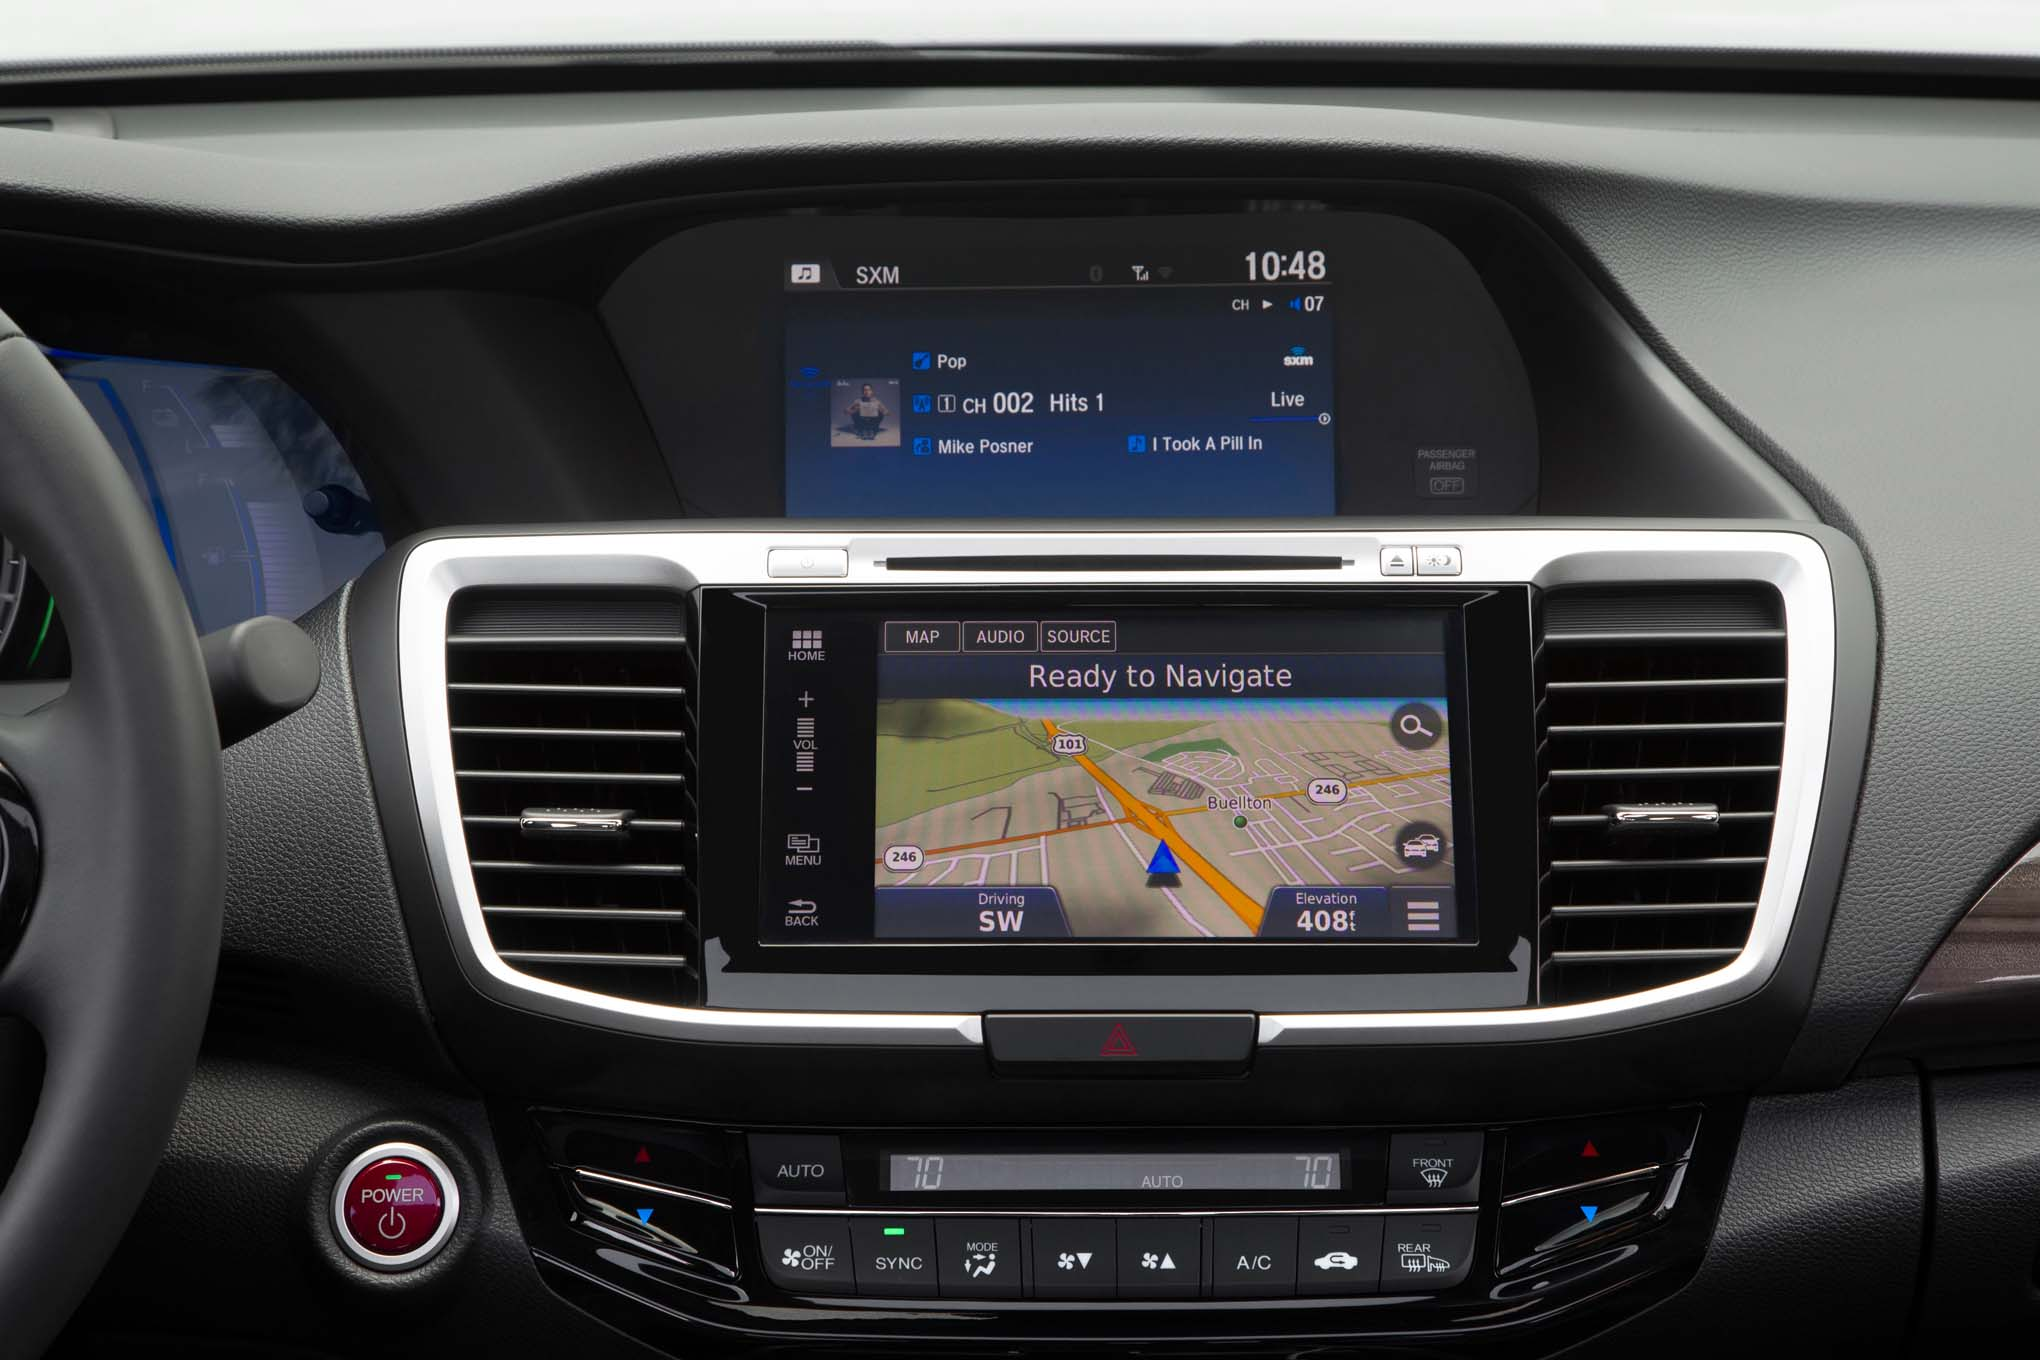 2017 Honda Accord Hybrid Center Stack Navigation